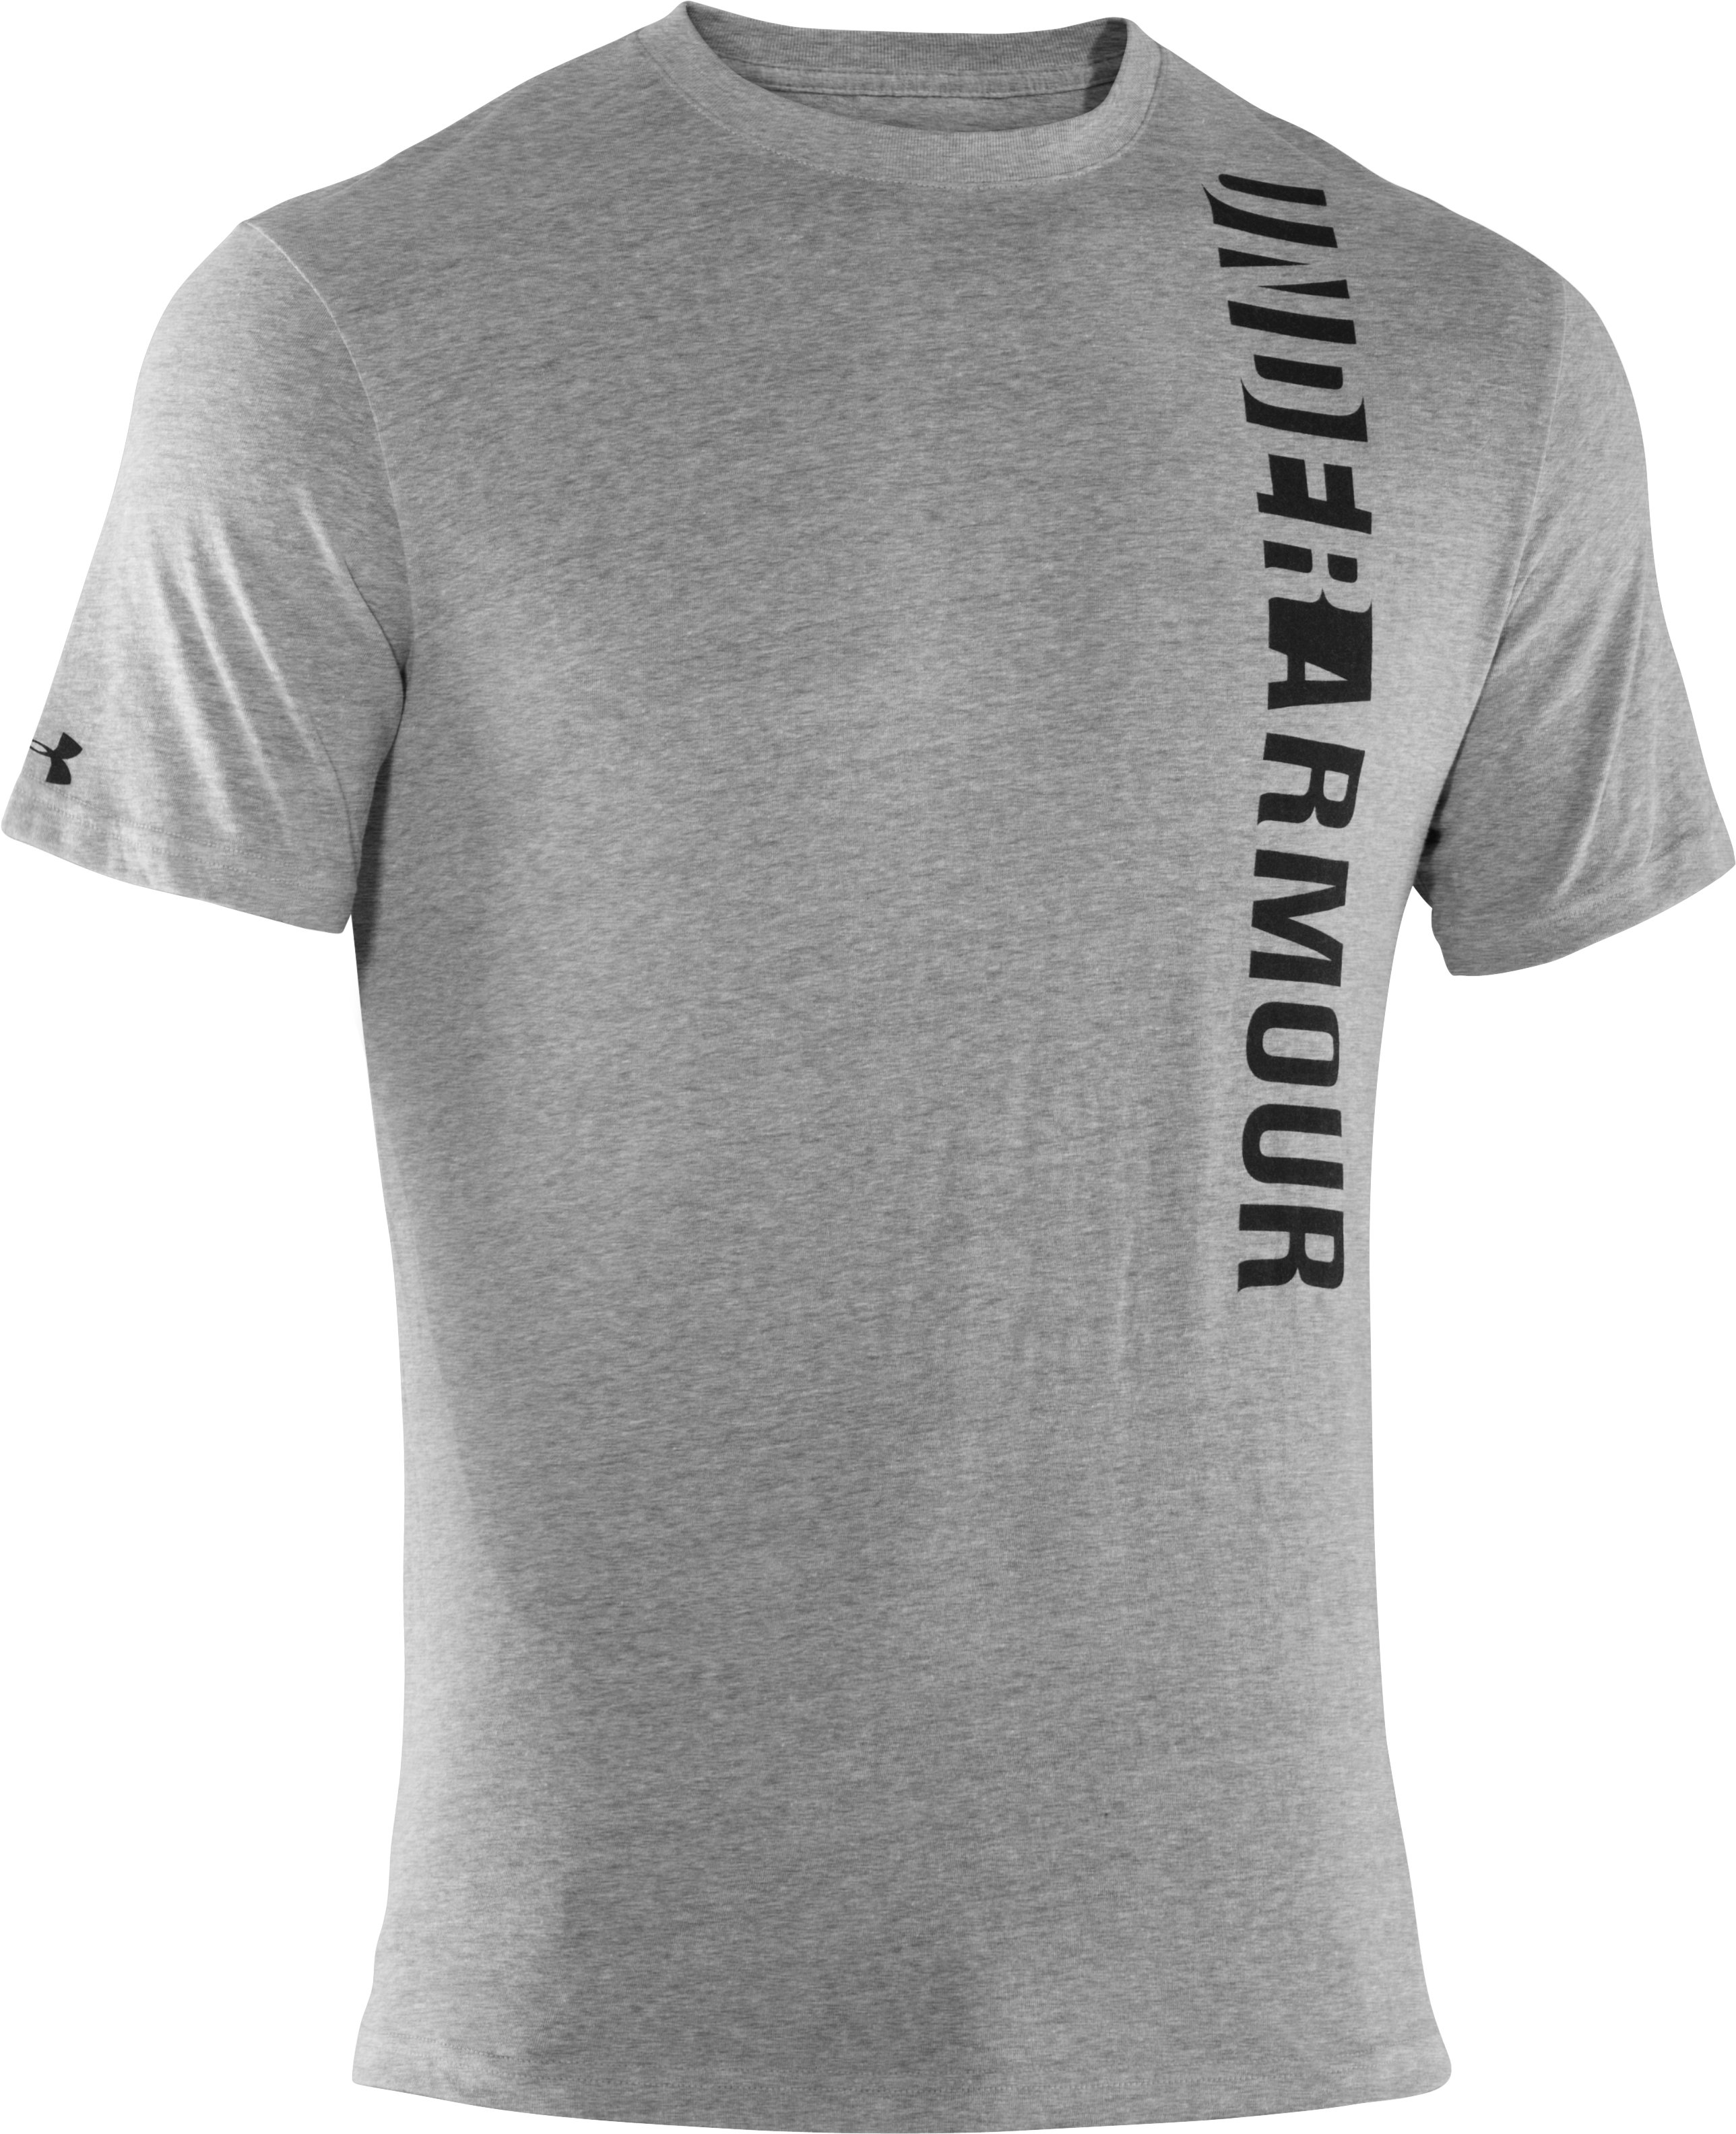 Men's UA Vertmark T-Shirt, True Gray Heather